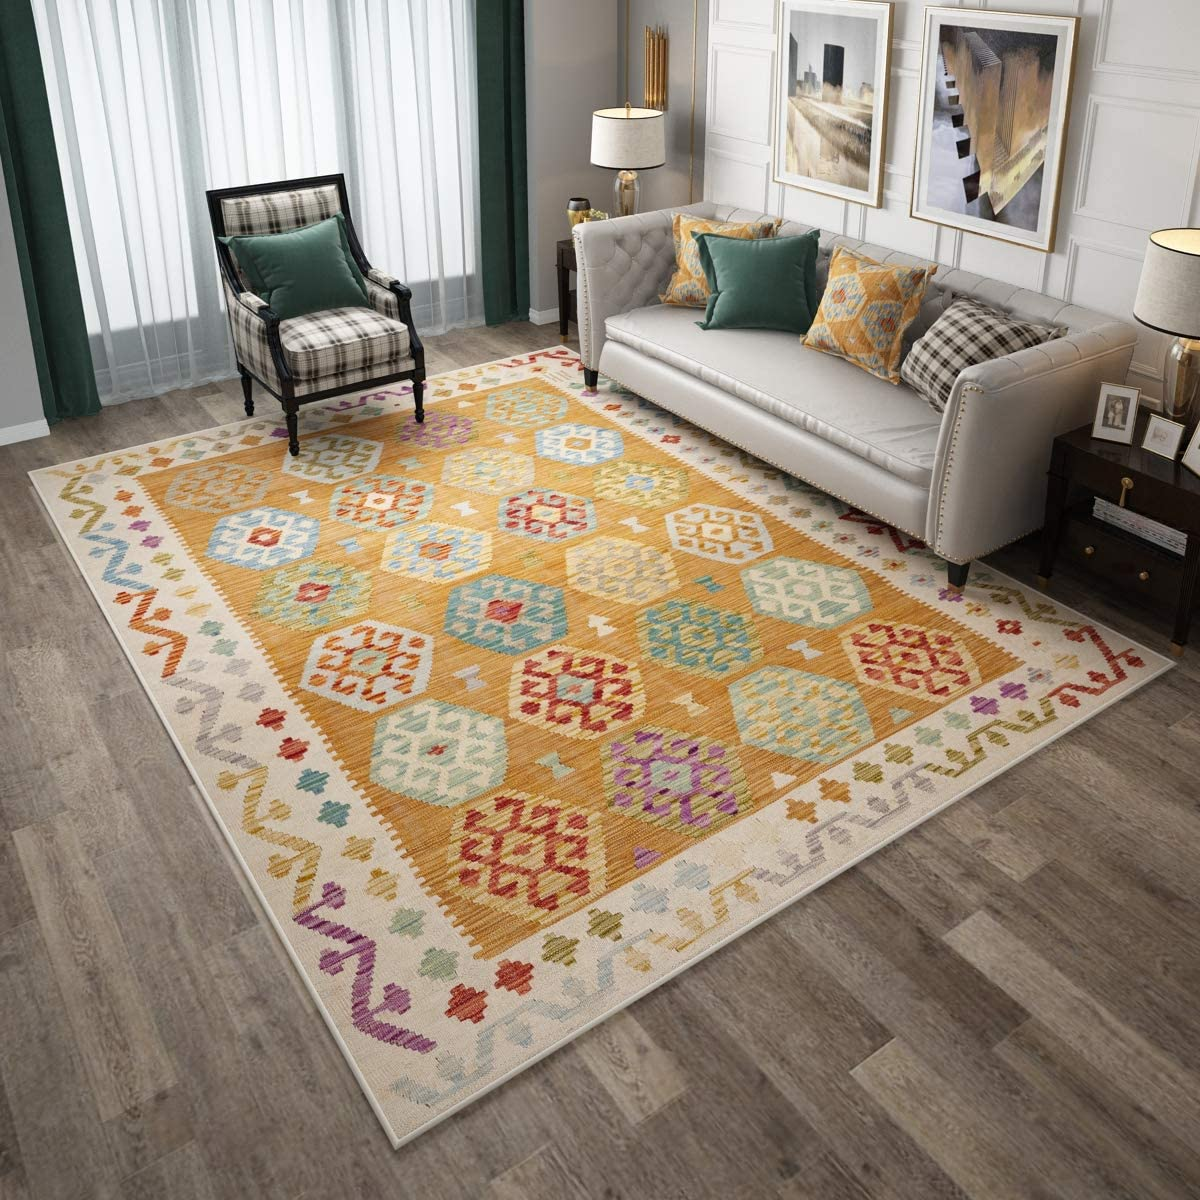 Colorful Floral Pattern, 5.3 x8 Bohemian Living Room Rug, Suitable for Office, Bedroom, Dining Room Rug